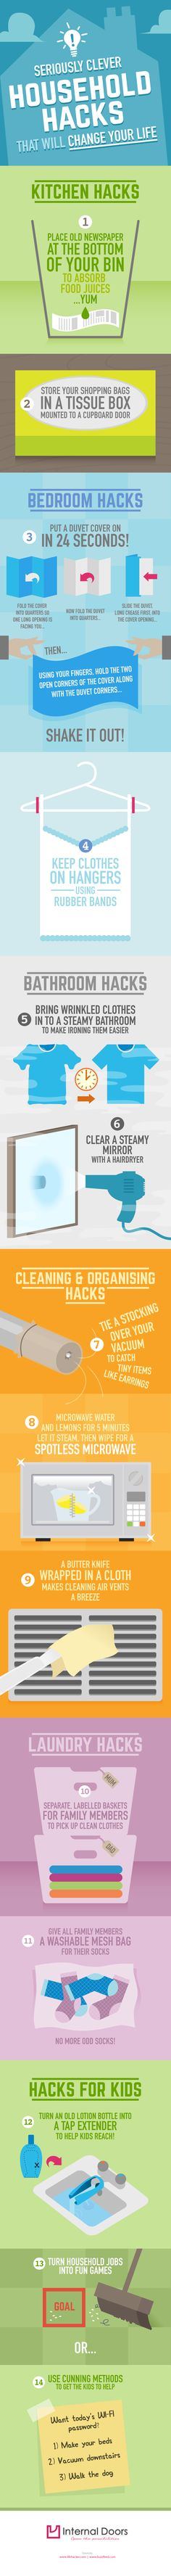 These Clever Household Hacks will Save You Time #infographic